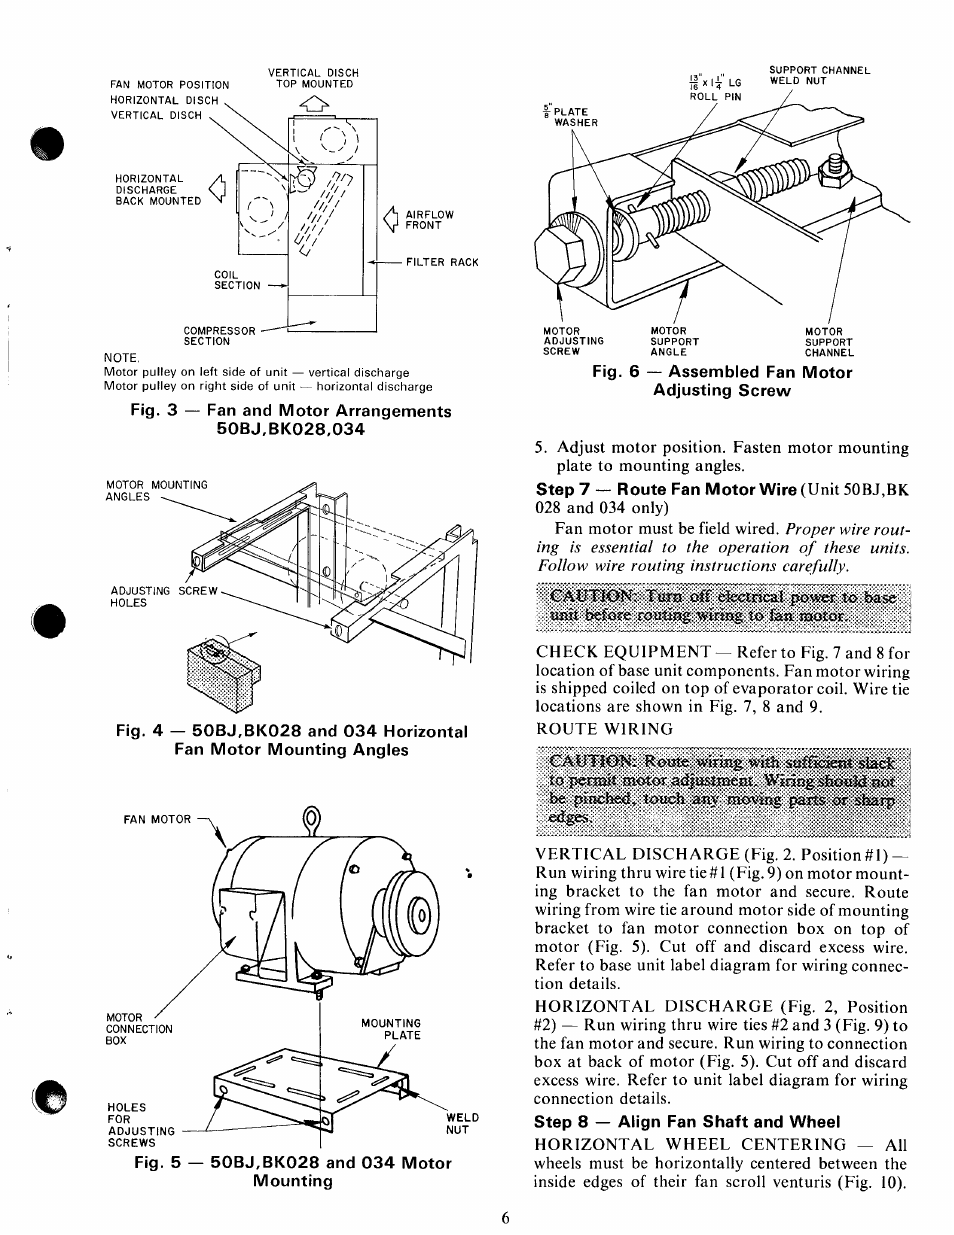 to pertmi motor a<3 ssii�esi�  not, be pfecbed^ toecli zm moviiig parts or  sharp, step 8 — align fan shaft and wheel   carrier 50bk user manual   page  7 /